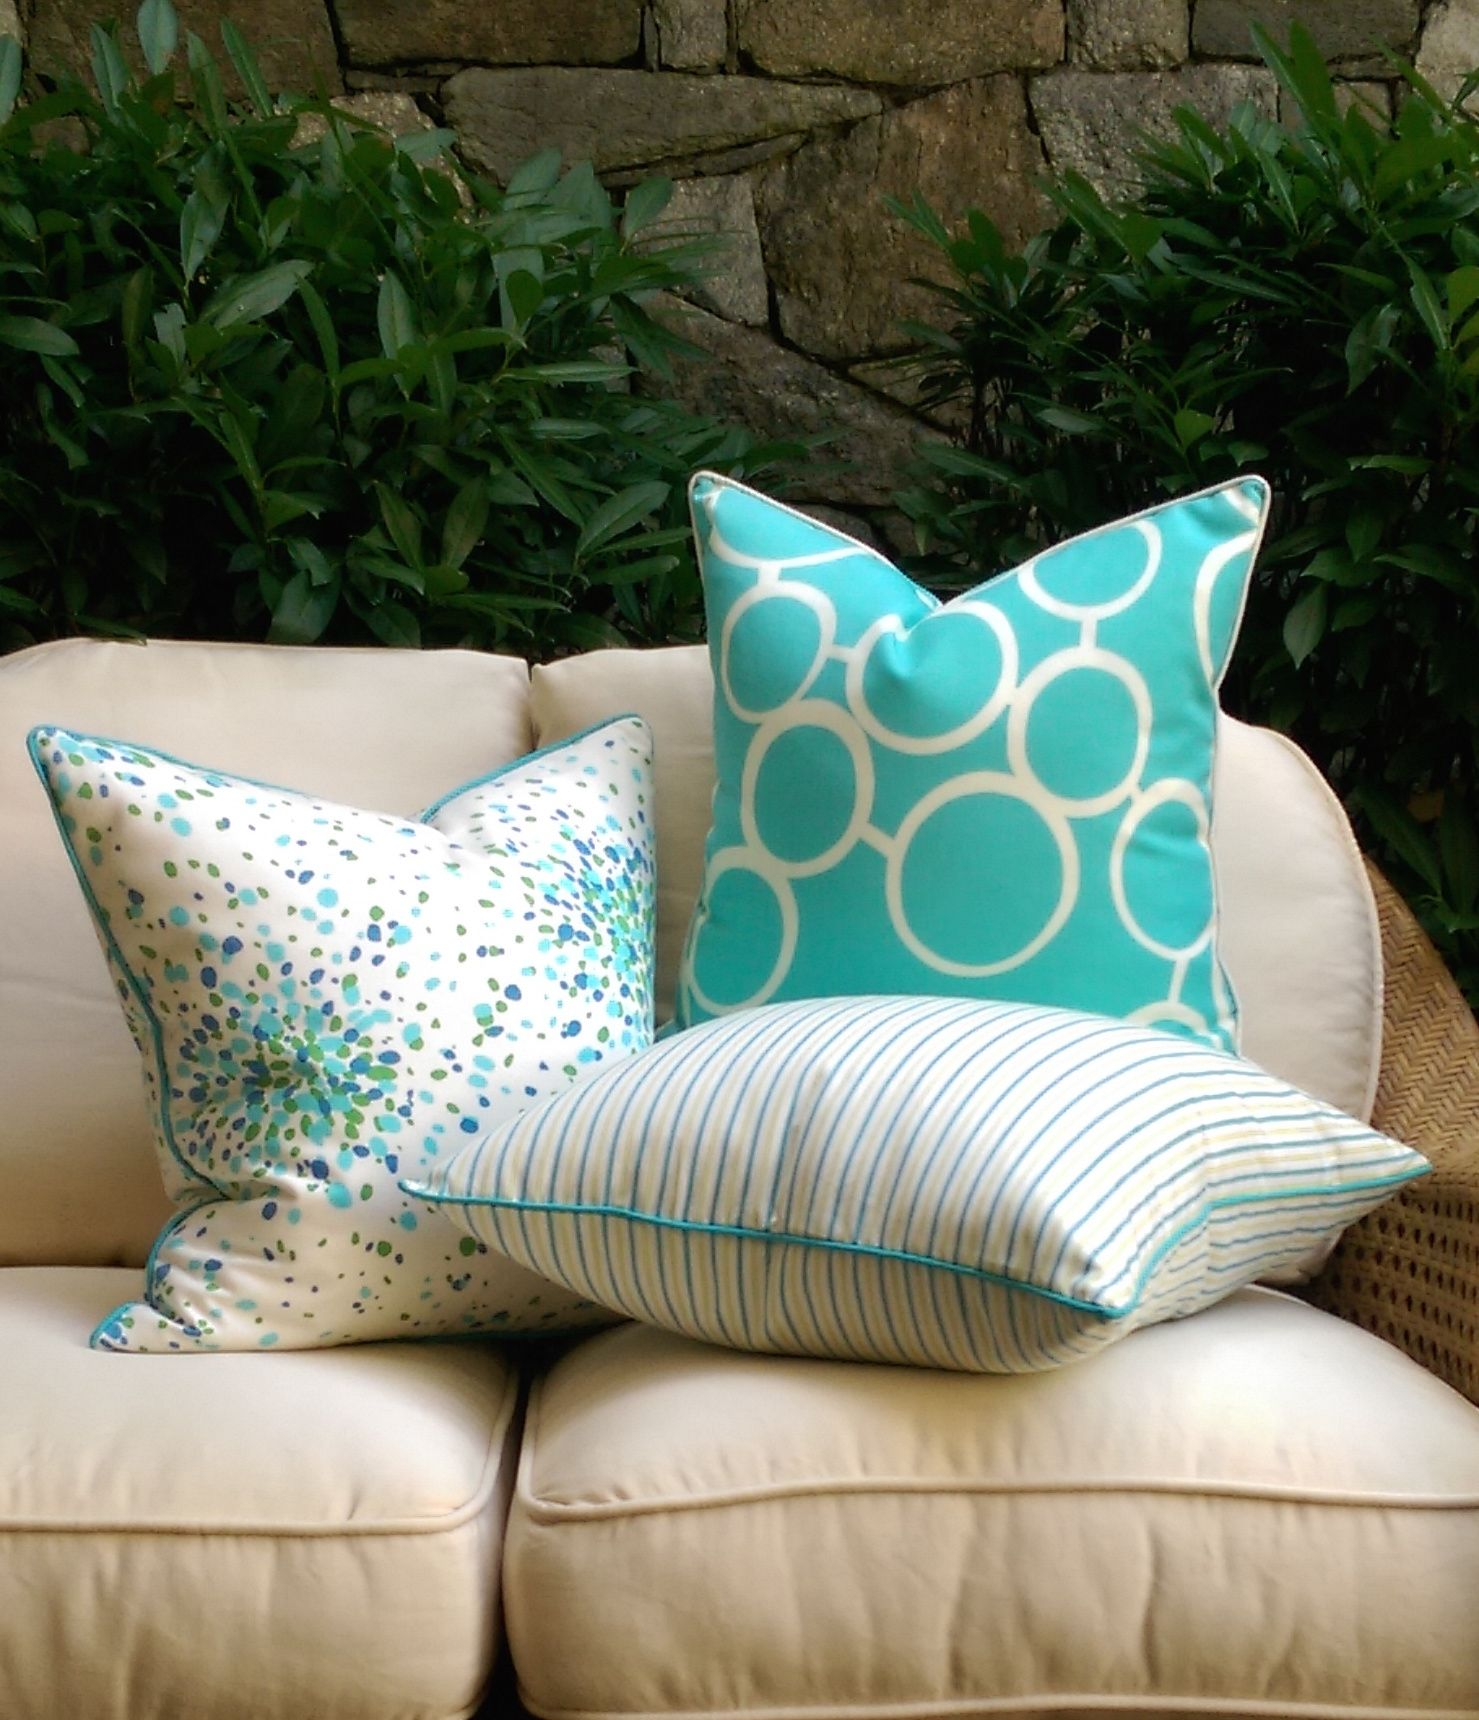 diy beach doodles pillow outside pillows turq stitches